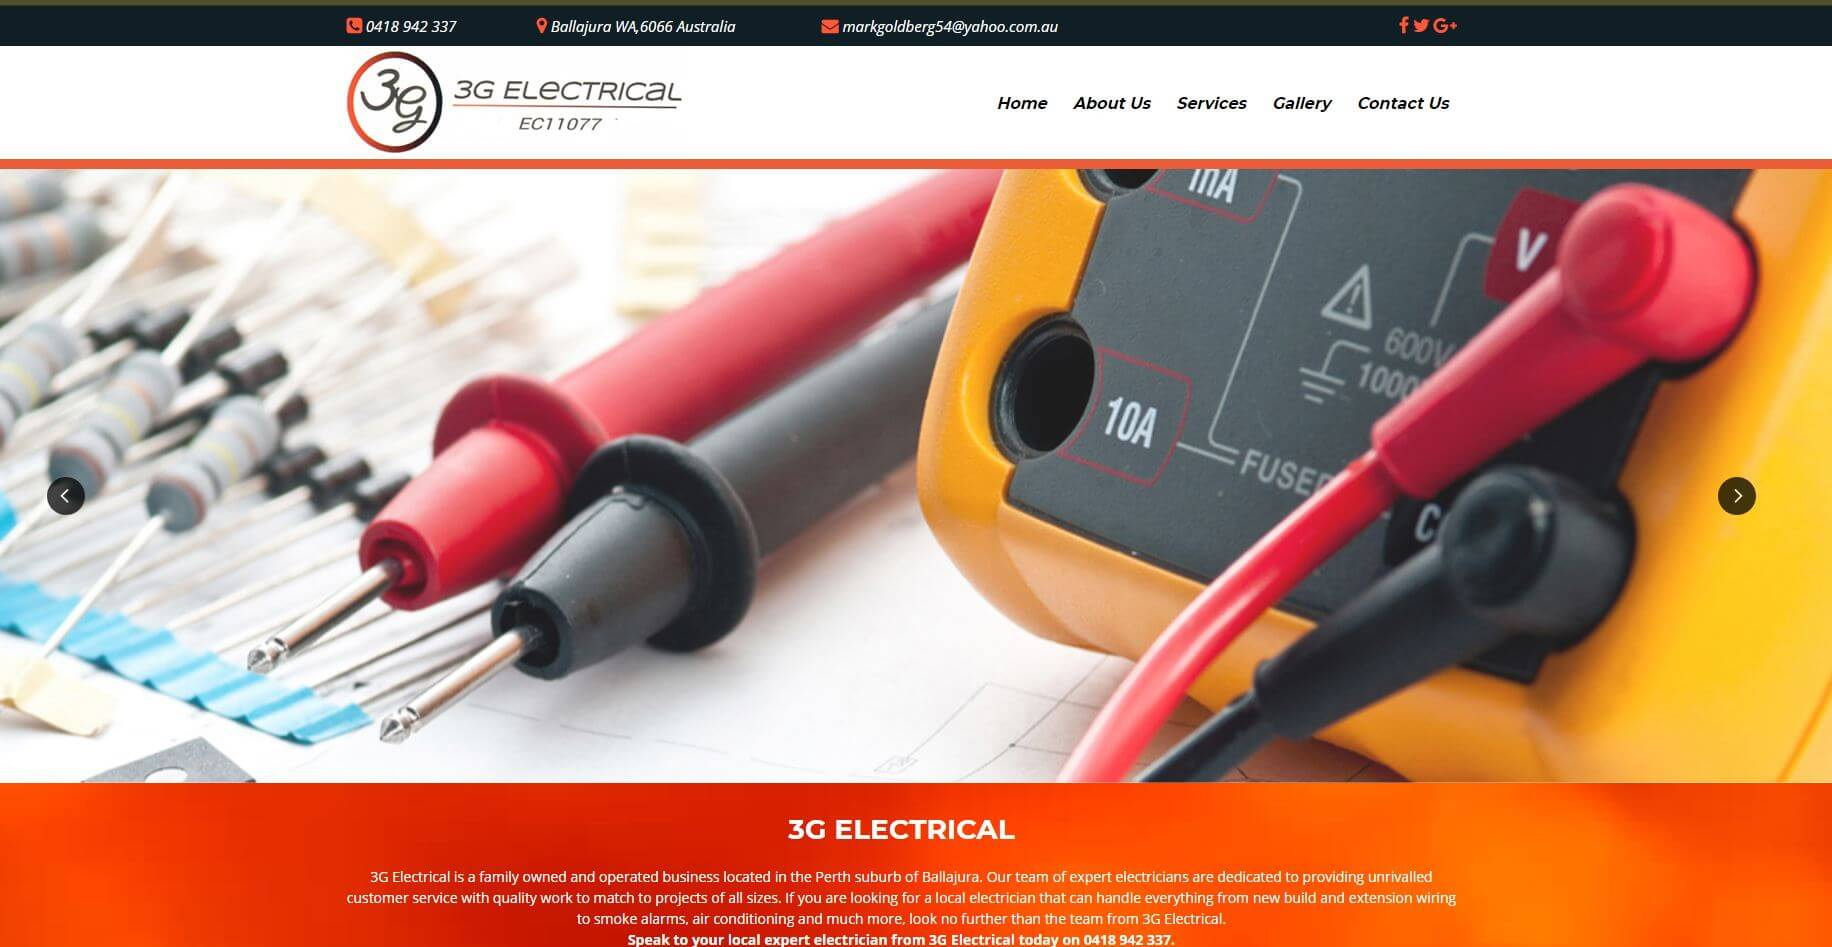 3g electrical electricians in perth